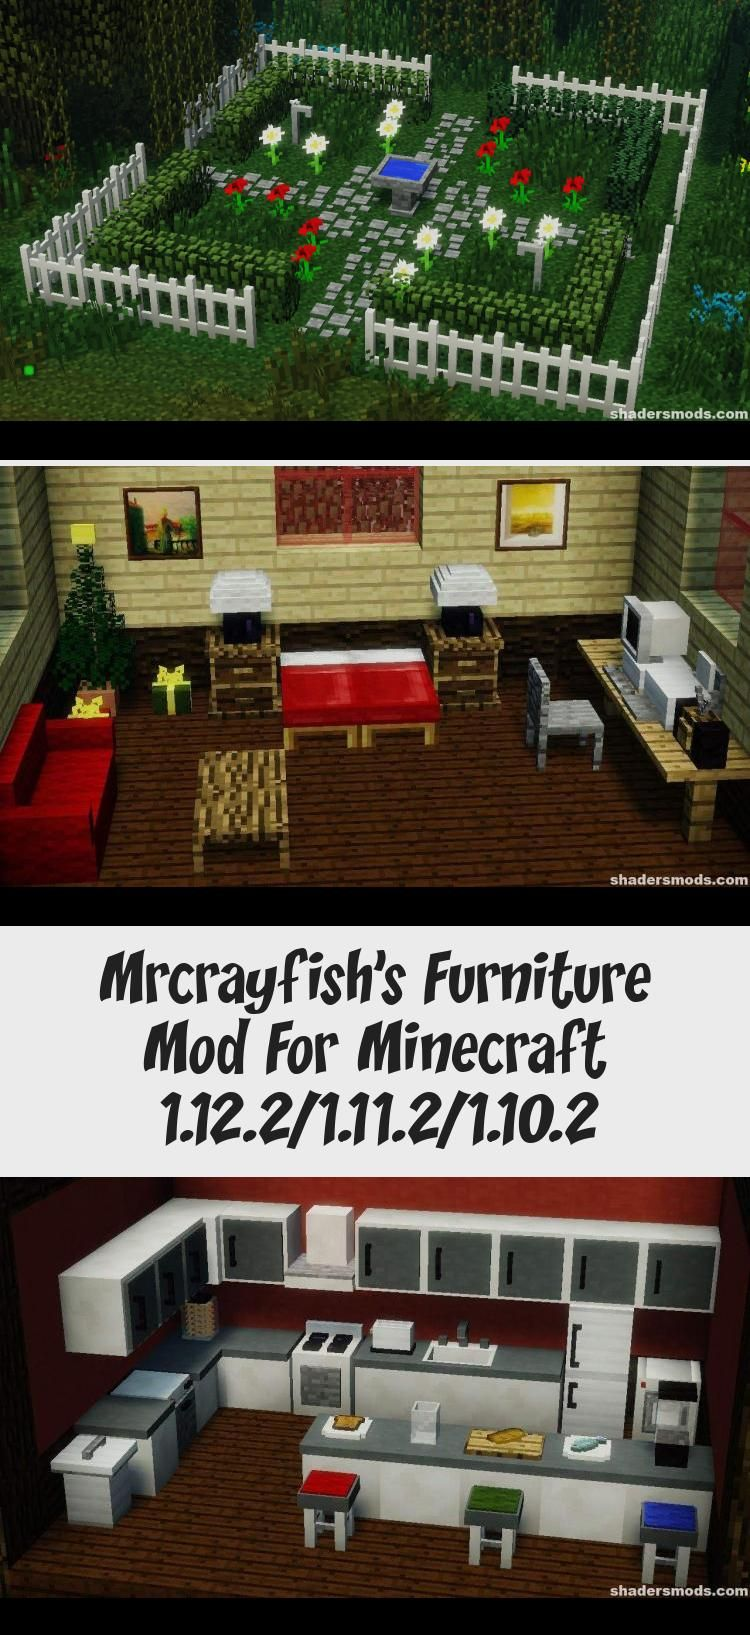 Mrcrayfish S Furniture Mod For Minecraft 1 12 2 1 11 2 1 10 2 Shaders Mods Minecraftdiy Minecraftpaisajes Minecraftco Minecraft Mods Minecraft 1 Minecraft